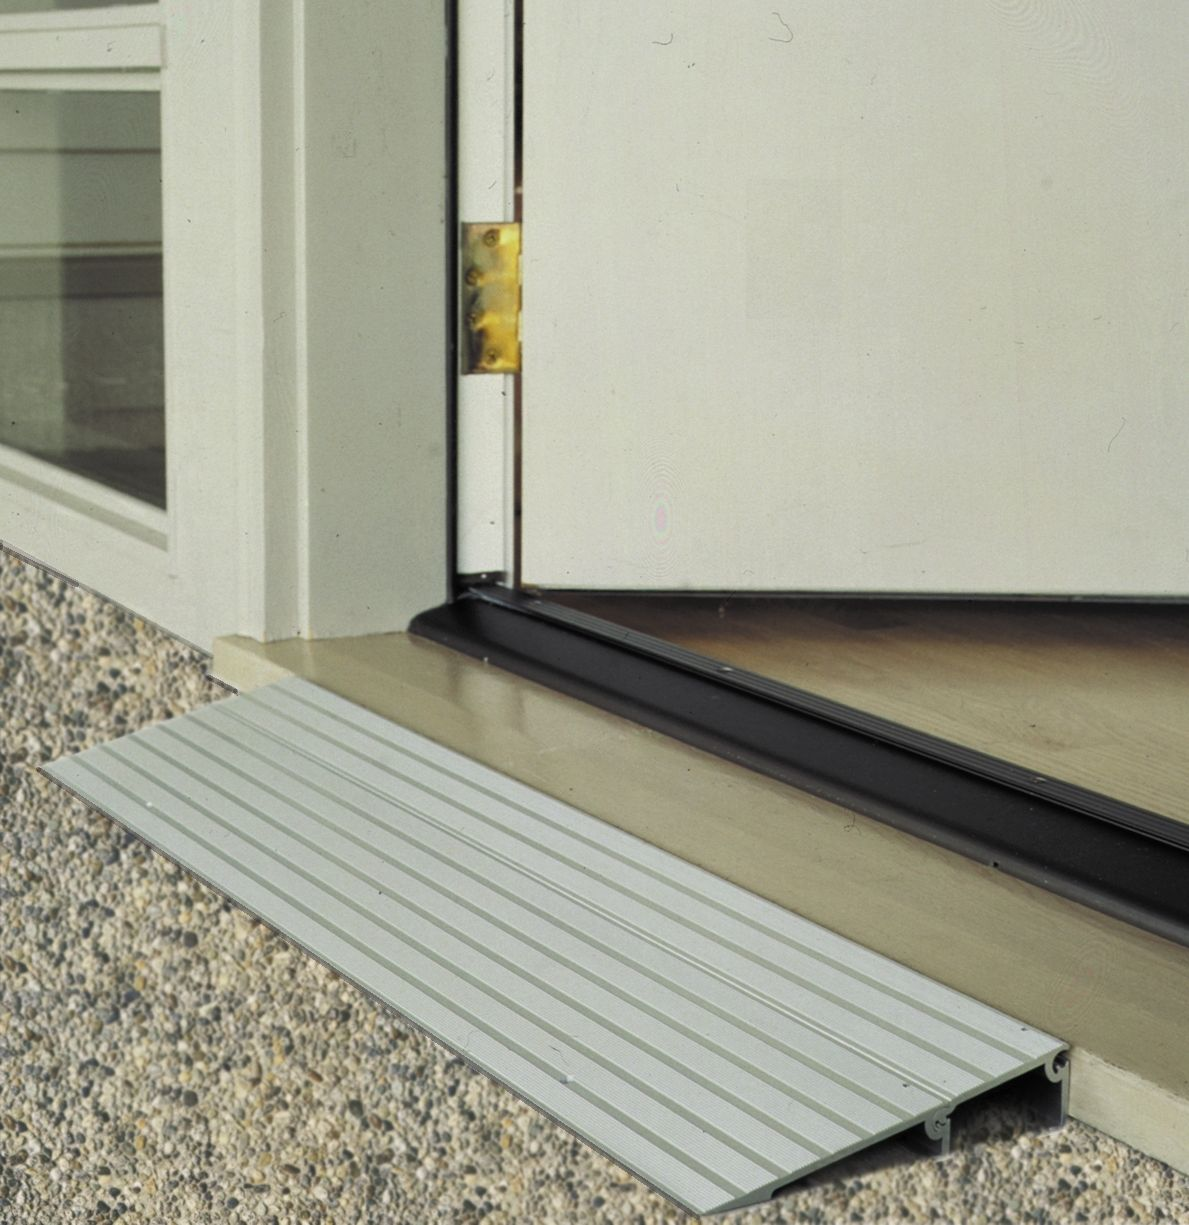 Ez Access Portable Wheelchair Ramps For Homes Solve Step And Door Threshold Accessibility Is Wheelchair Ramps For Home Portable Wheelchair Ramp Wheelchair Ramp